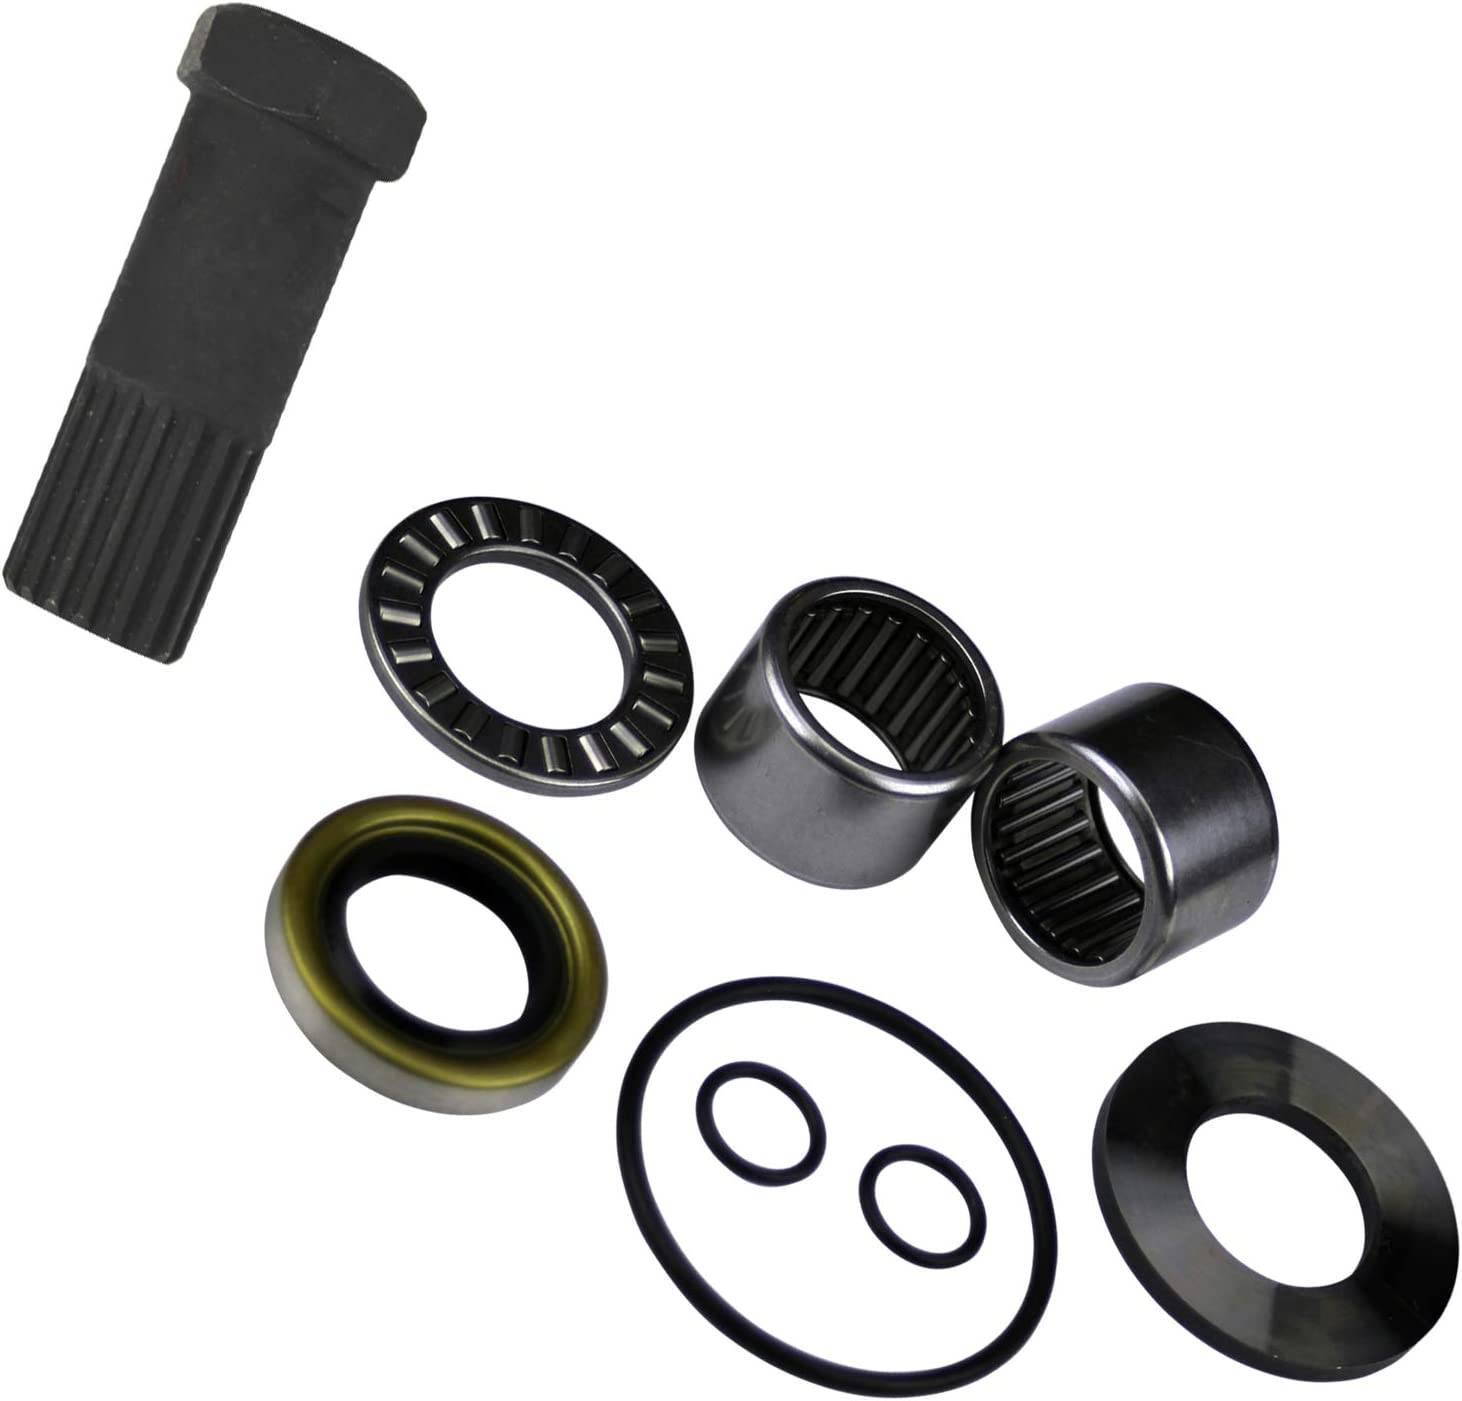 Compatible With Sea-Doo, Fits 1990-91 GT, 1992-96 GTS /& 1992-1994 GTX Jet Pump Bearing /& Seal Rebuilt kit w//Impeller Tool